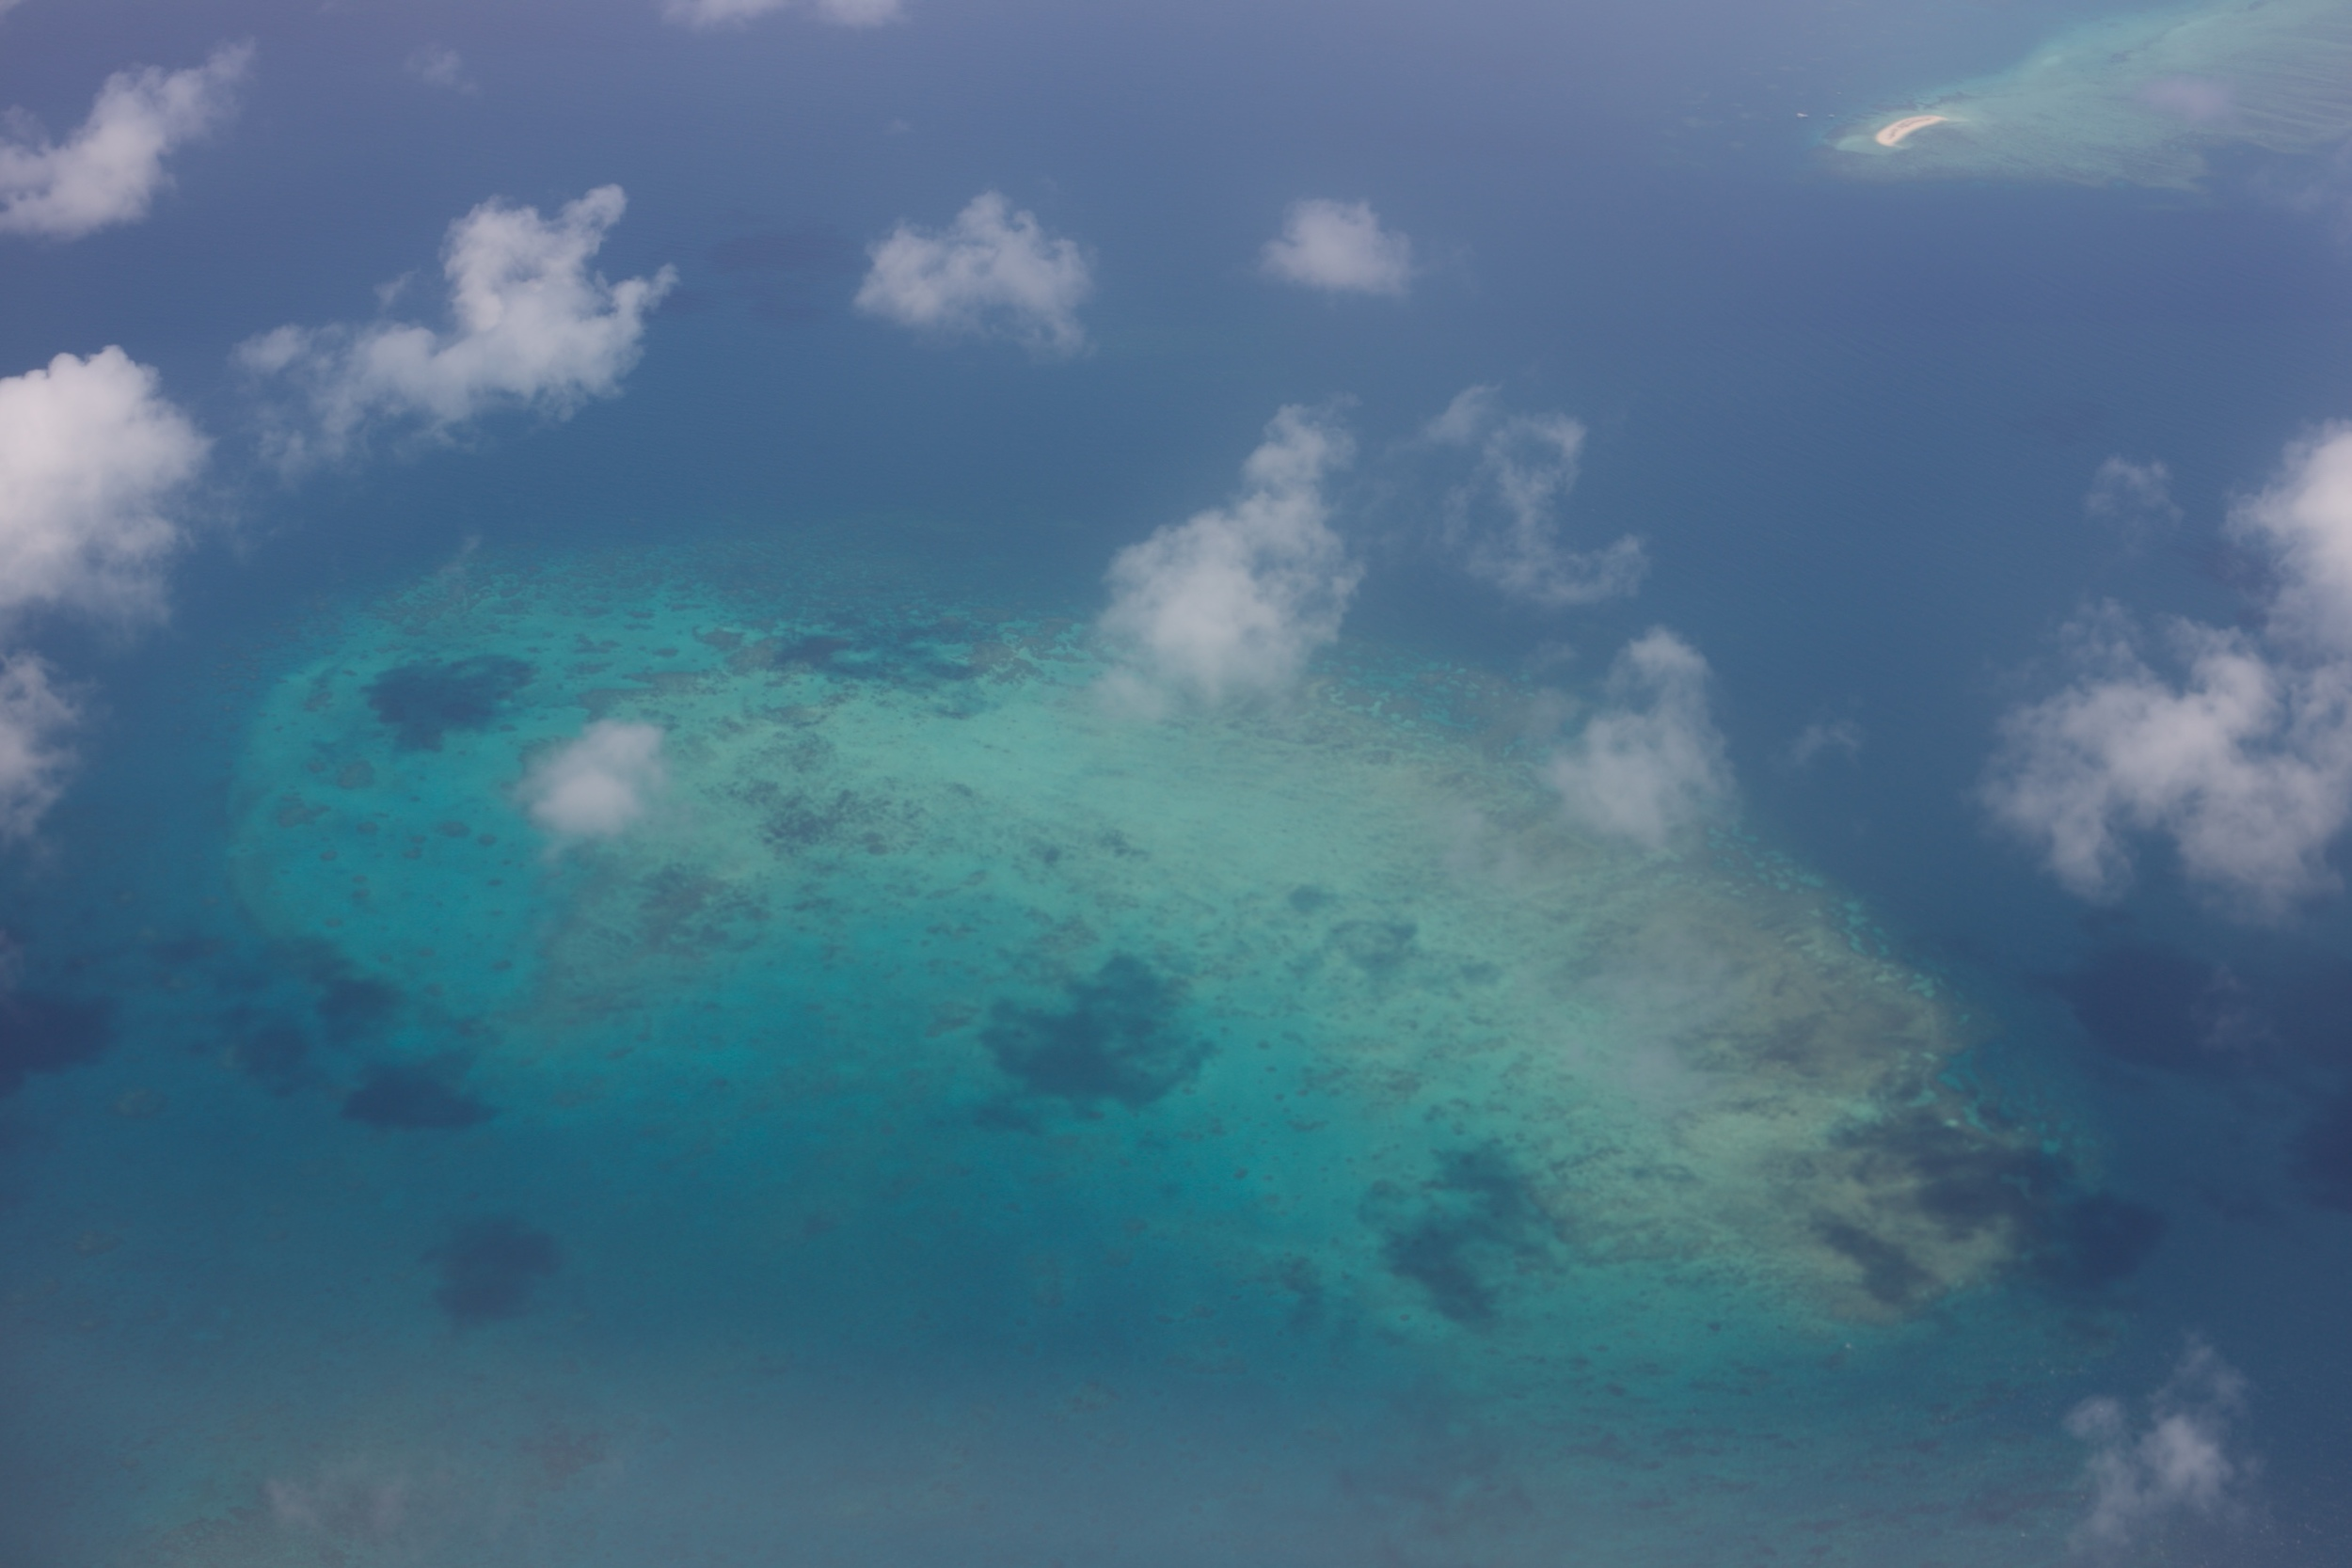 A small reef, part of the larger Great Barrier Reef, seen from a plane.